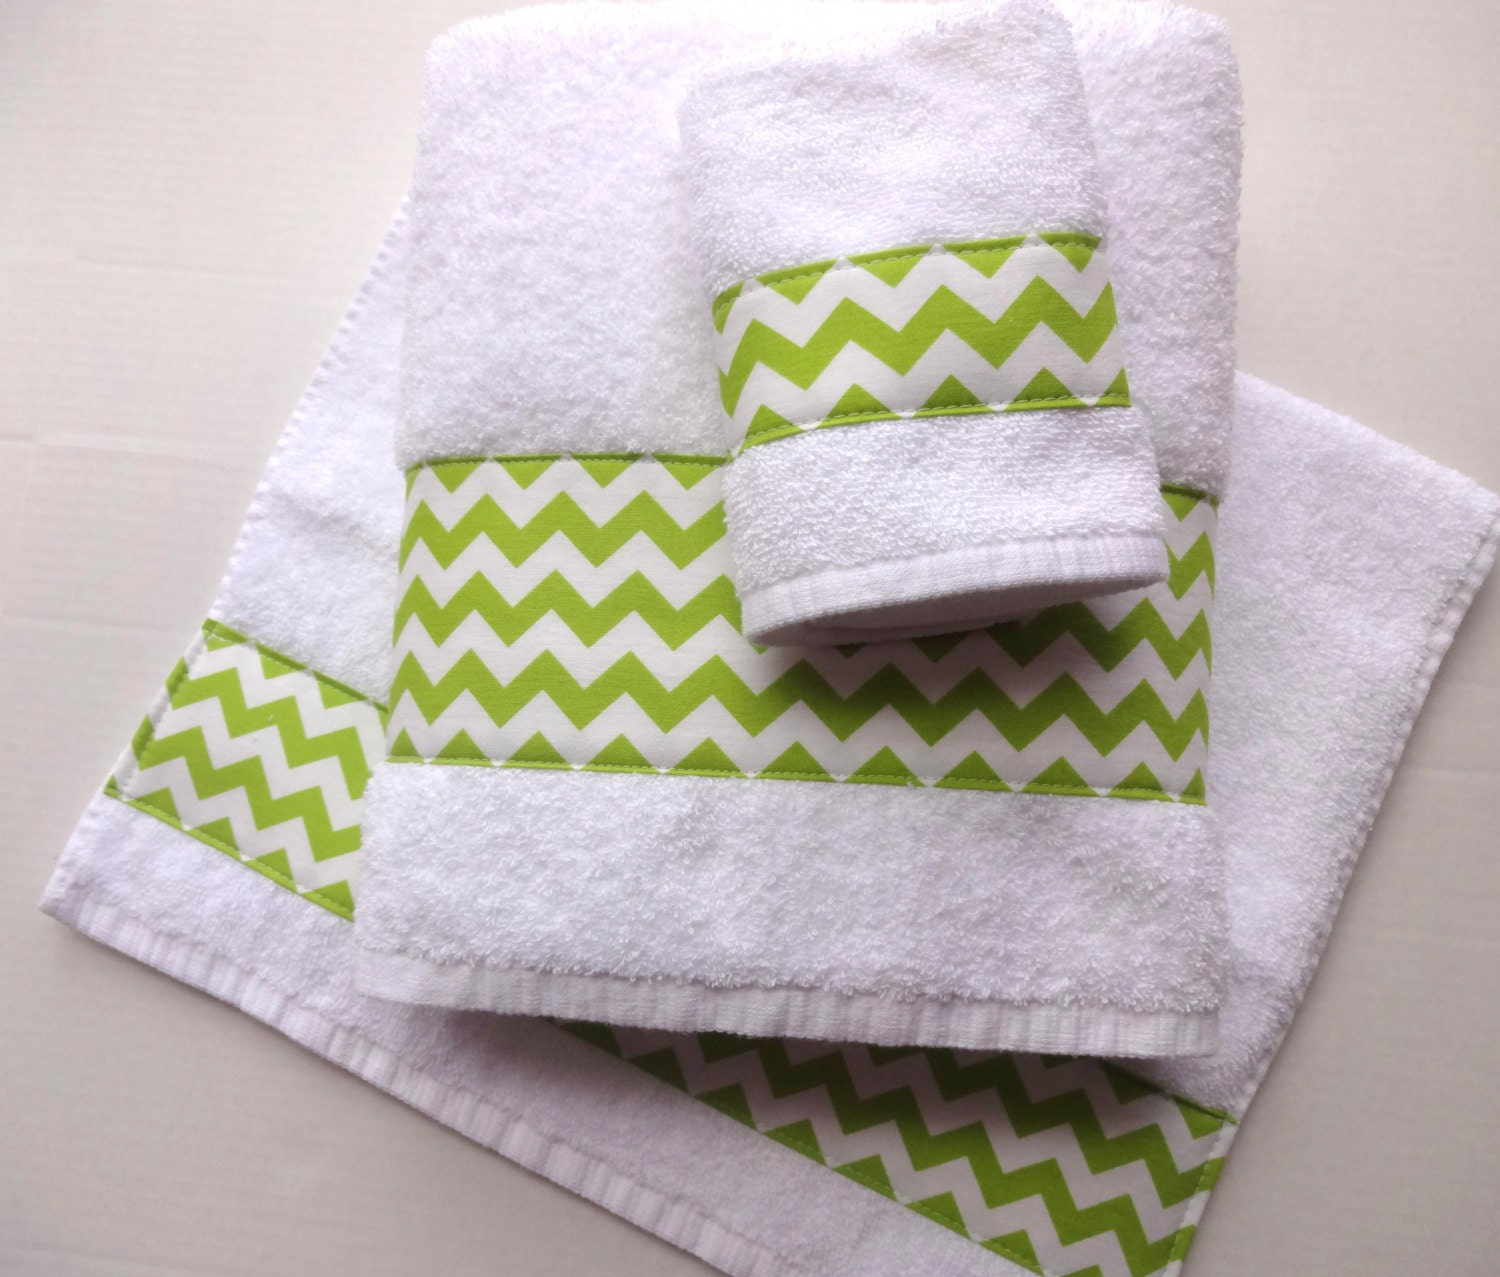 Hand Towels Bathroom: Lime Green Chevron Towels Hand Towels Chevron Lime Green